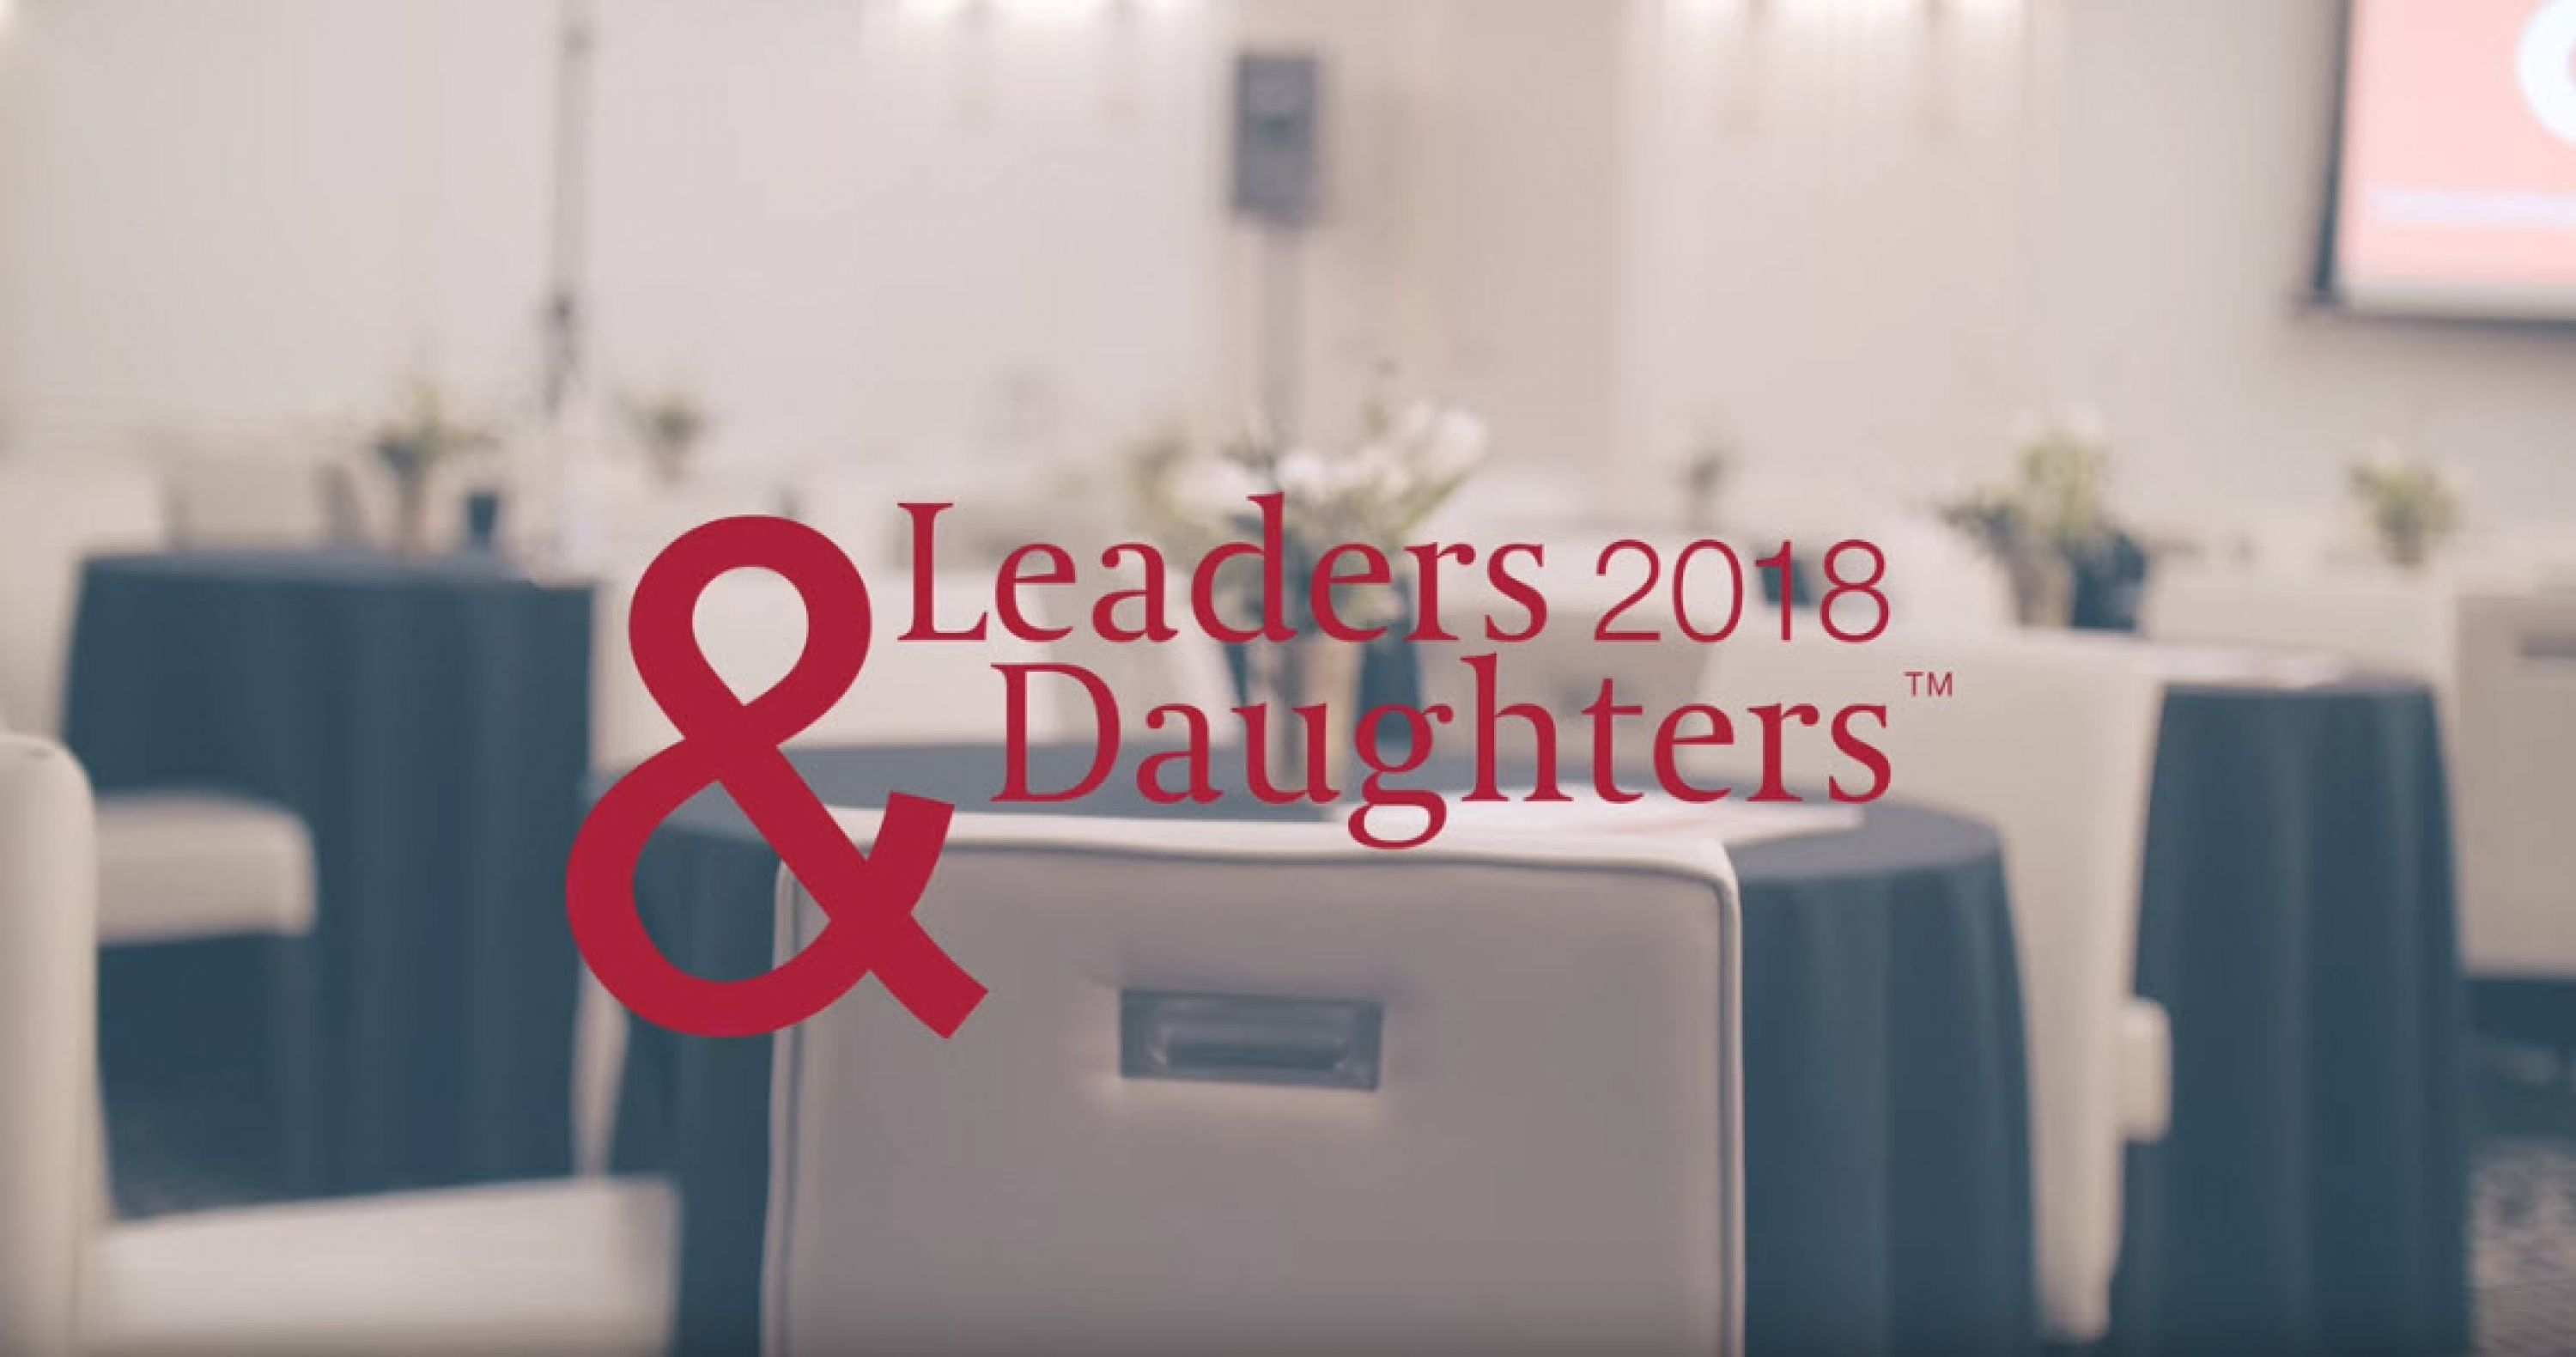 Leaders & Daughters, Montreal 2018 Highlights